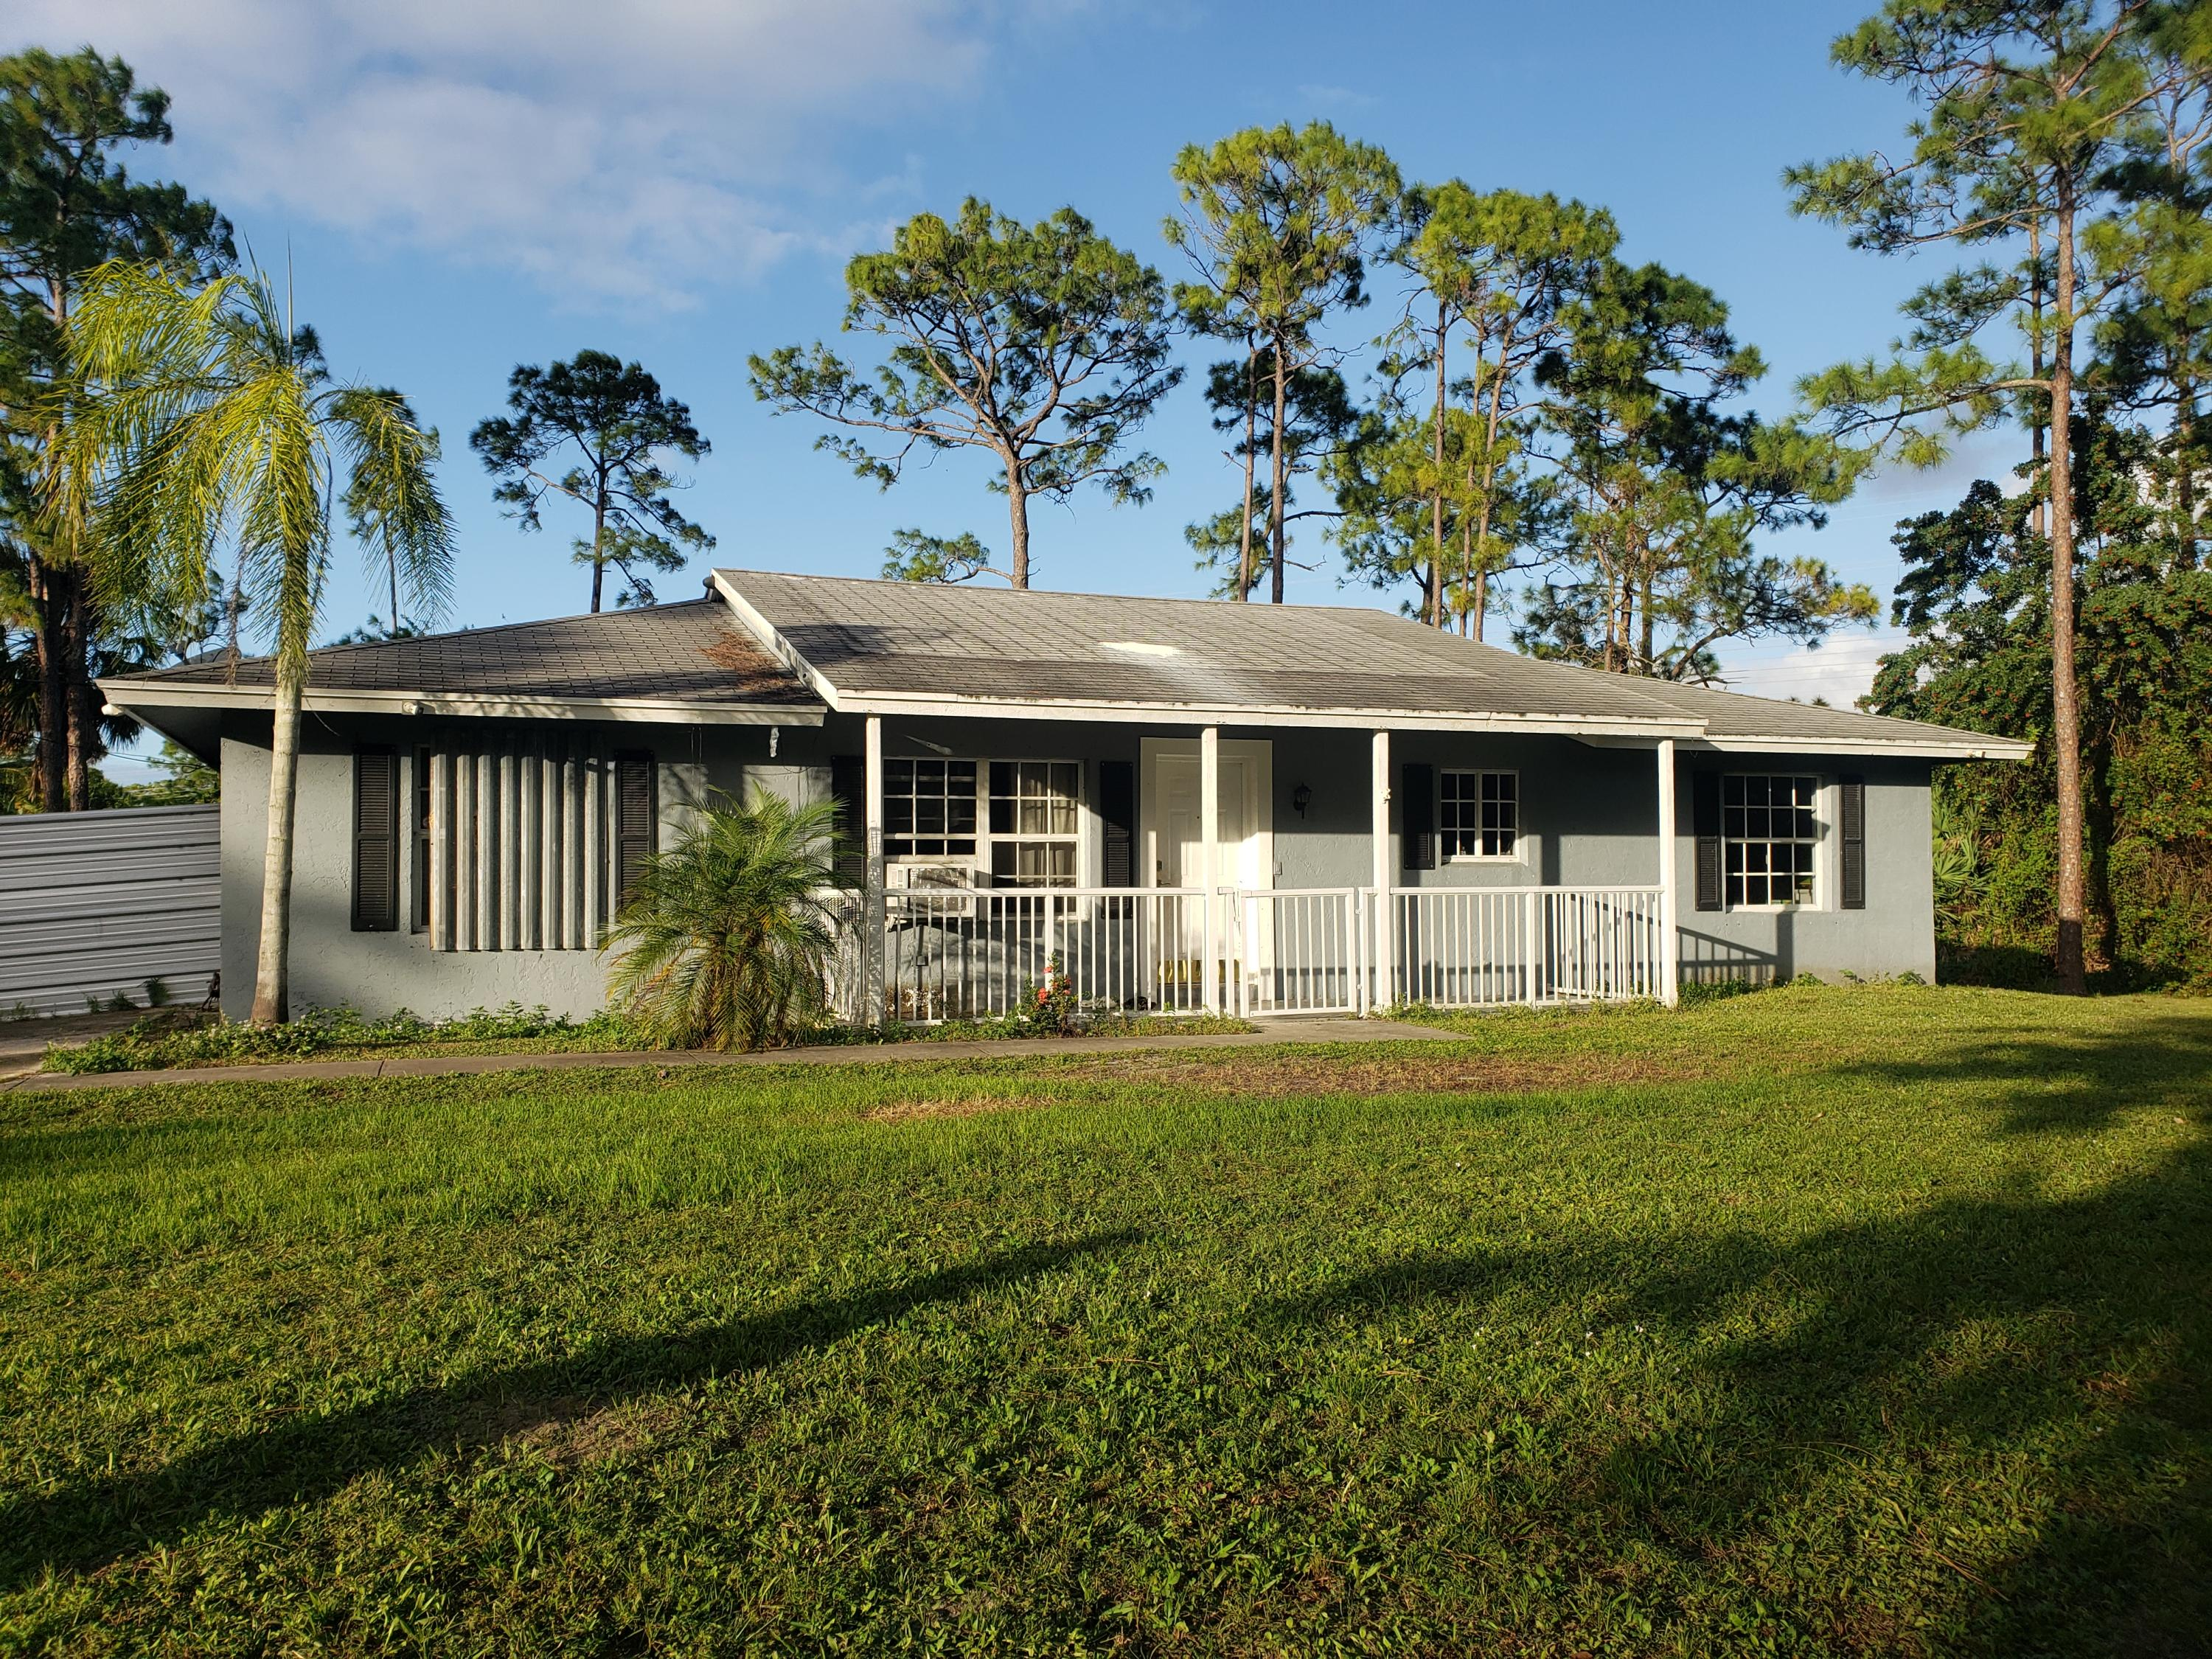 Home for sale in N/A Loxahatchee Florida